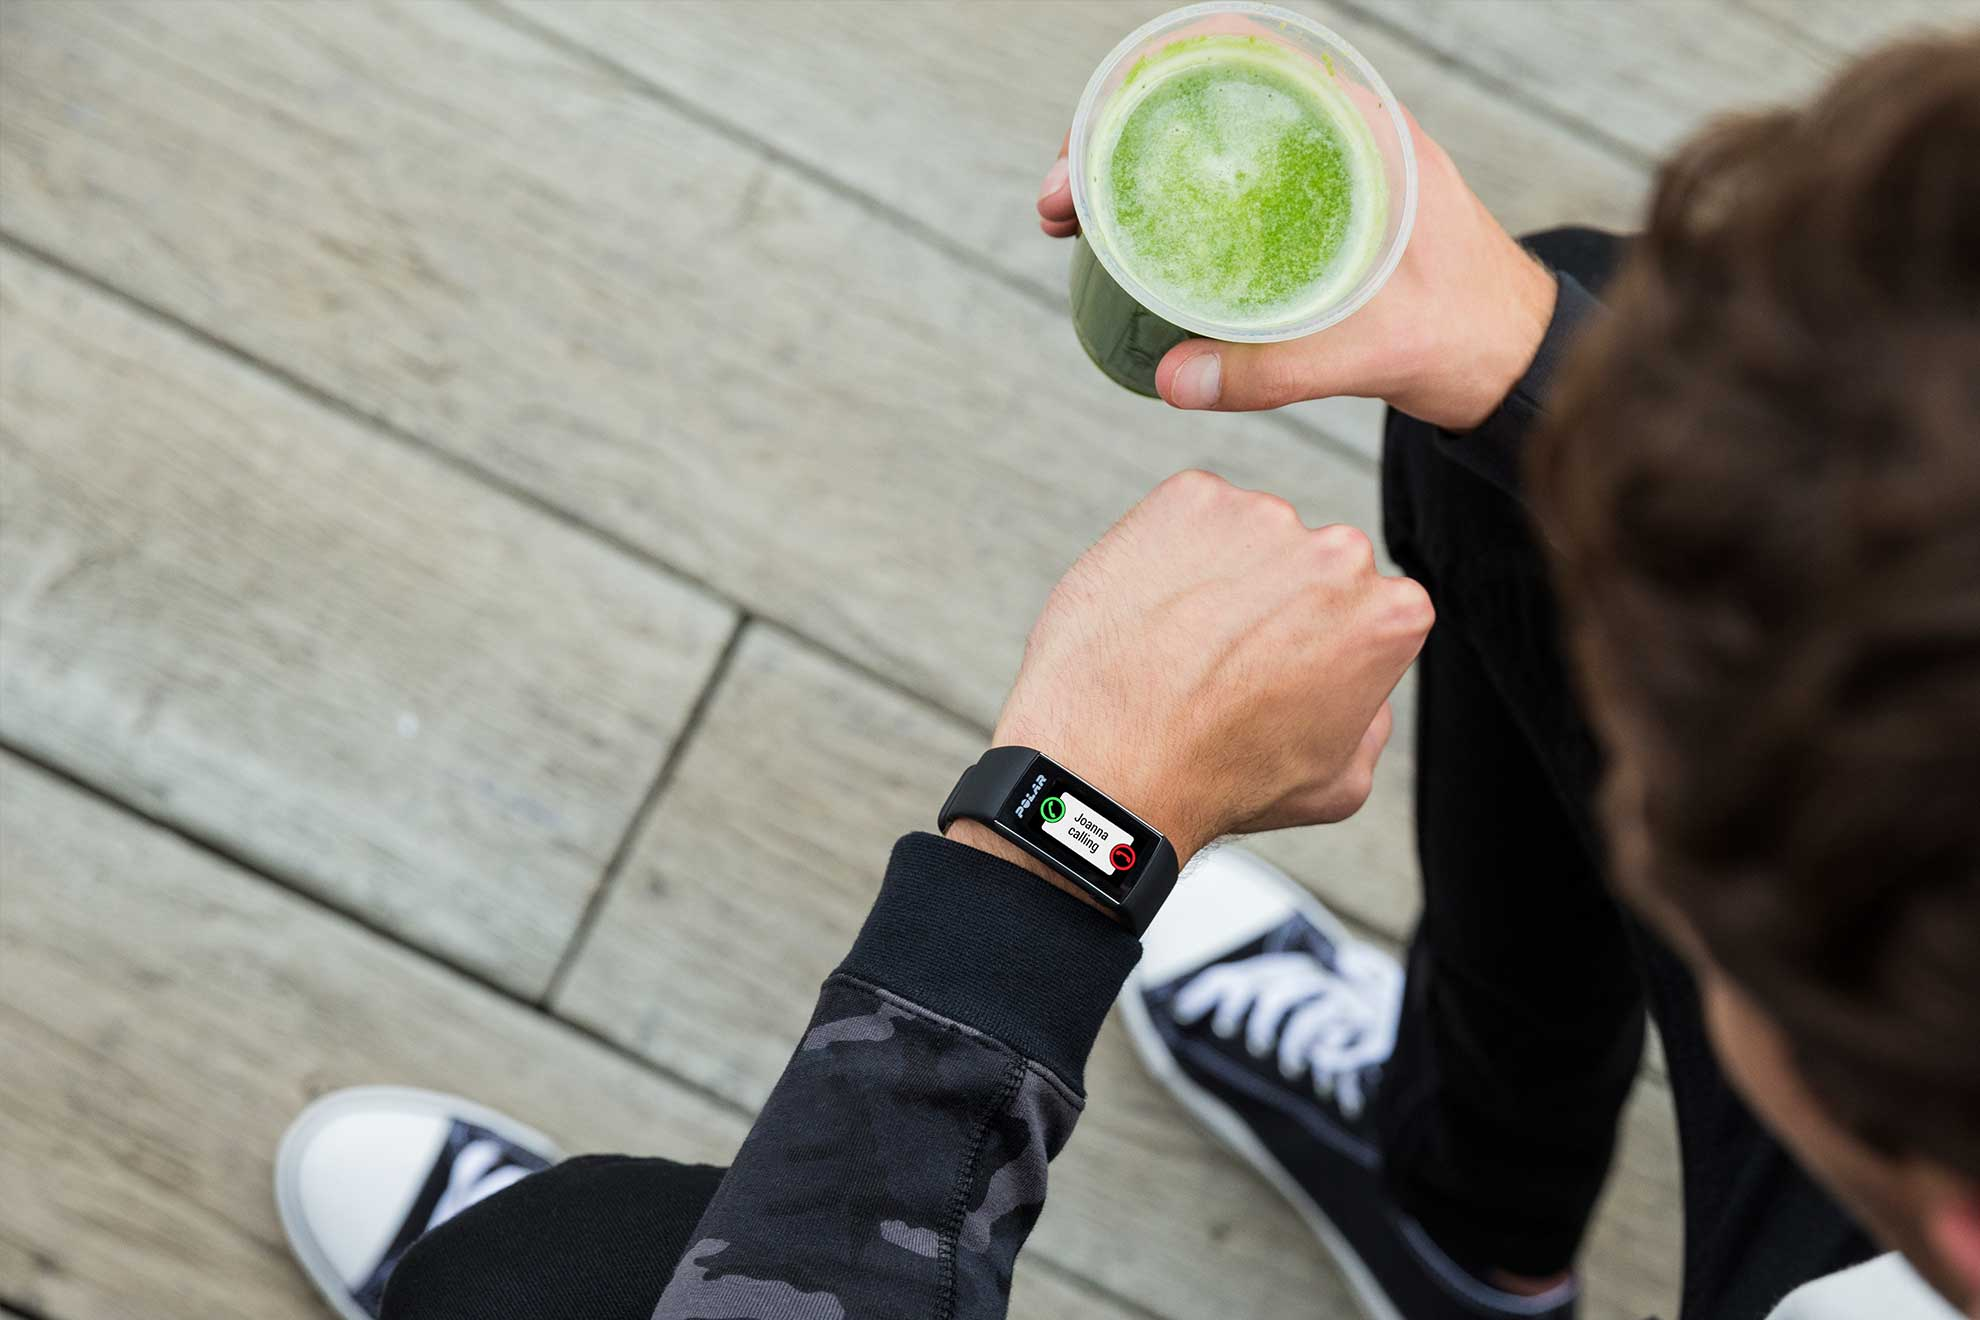 What is the best Polar heart rate monitor